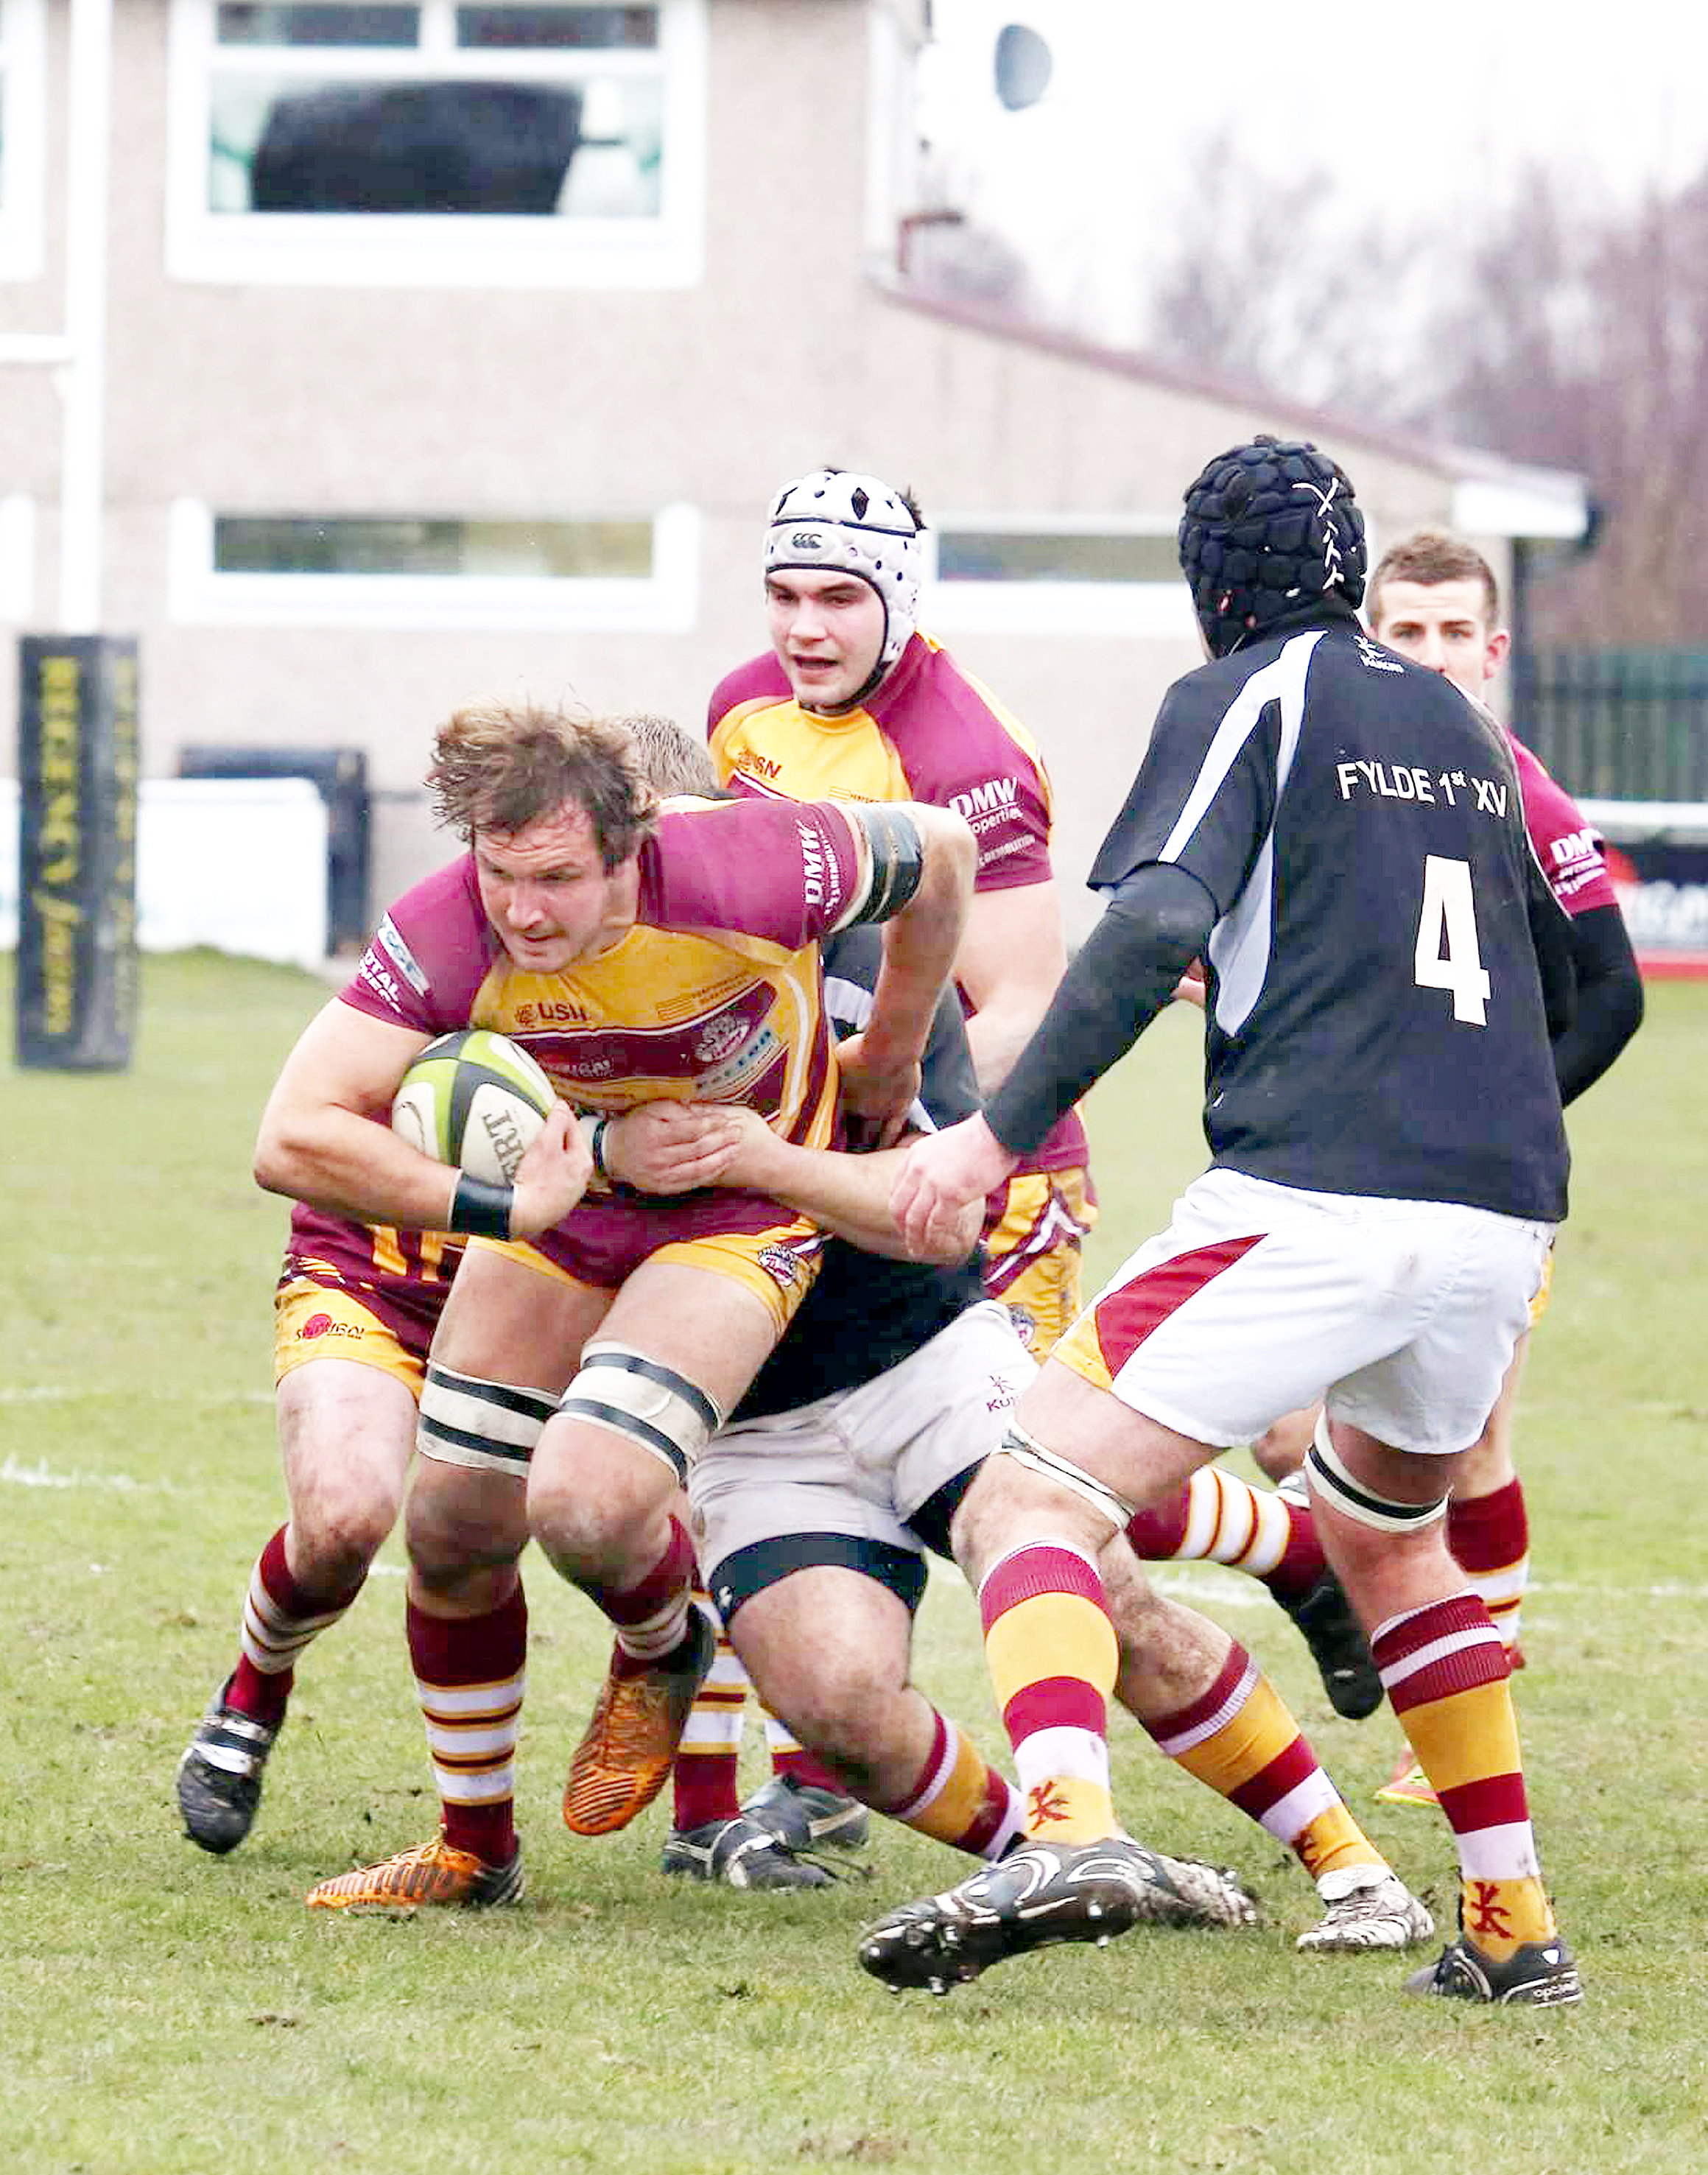 Juan Crous, pictured in action, is in line for a return for Sedgley Tigers